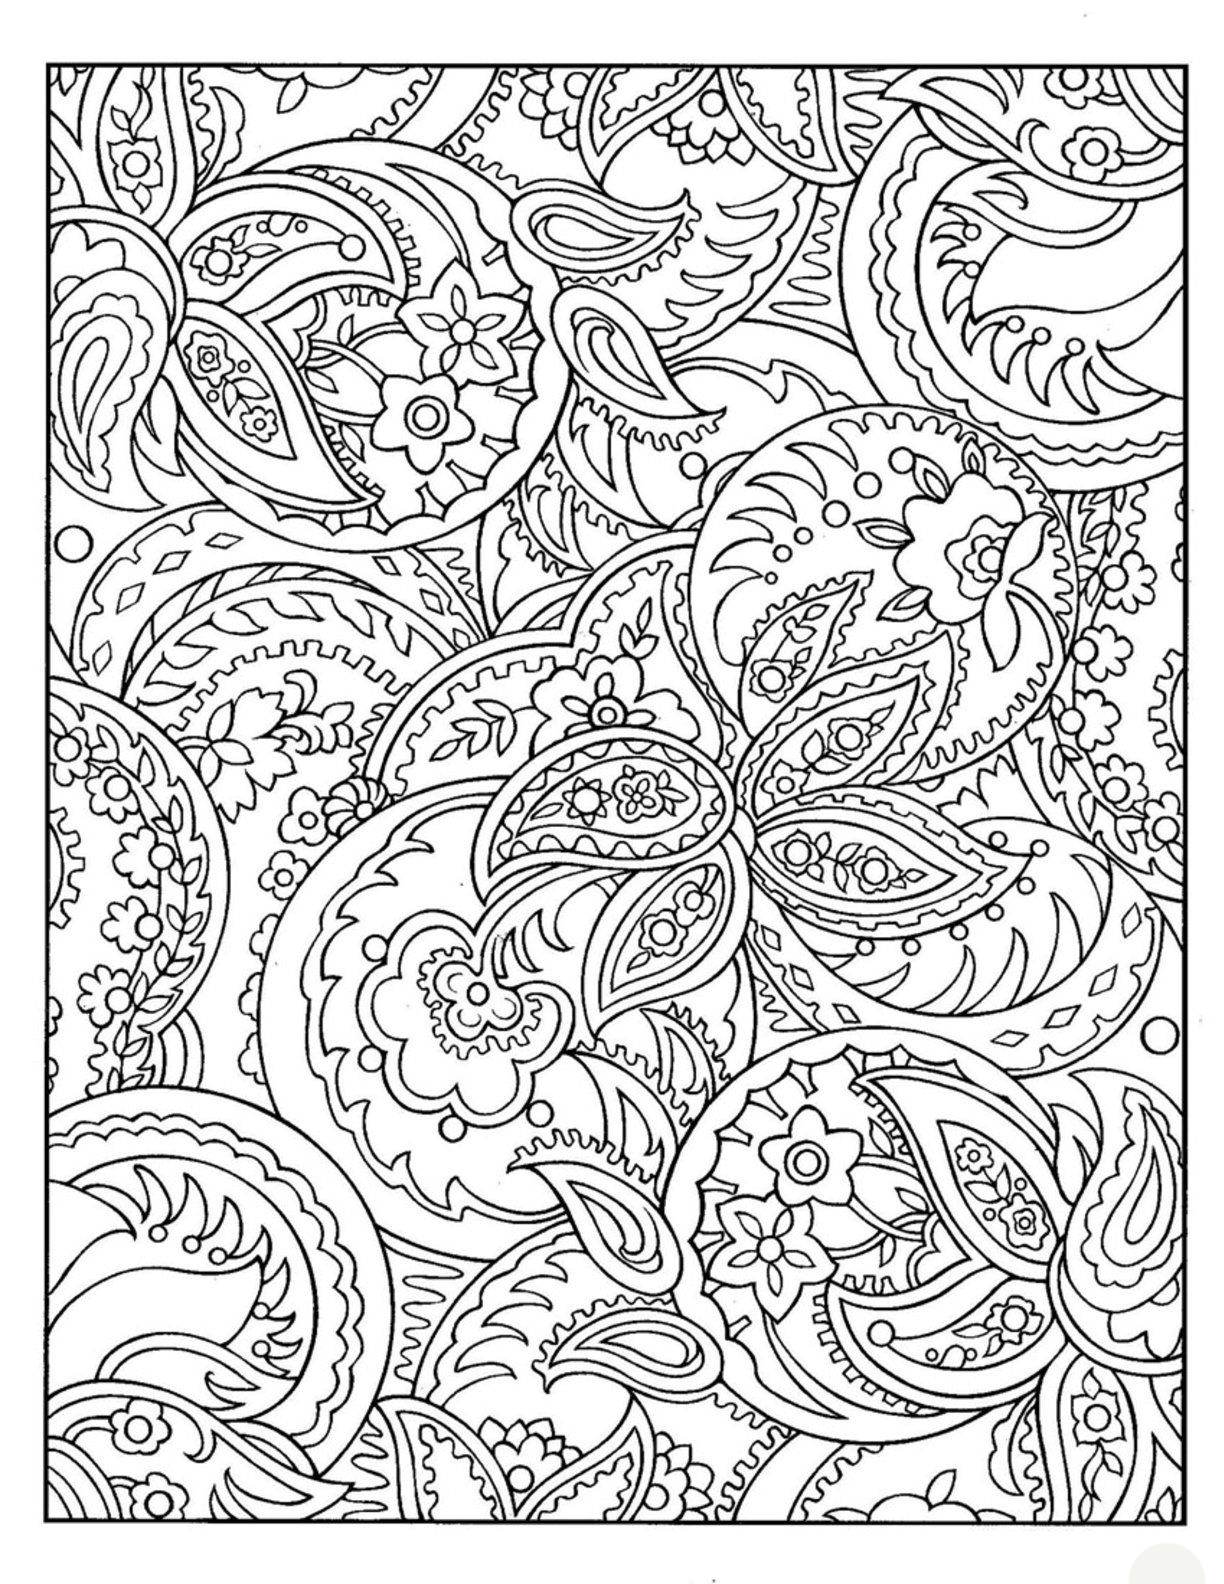 coloring patterns 20 attractive coloring pages for adults we need fun coloring patterns